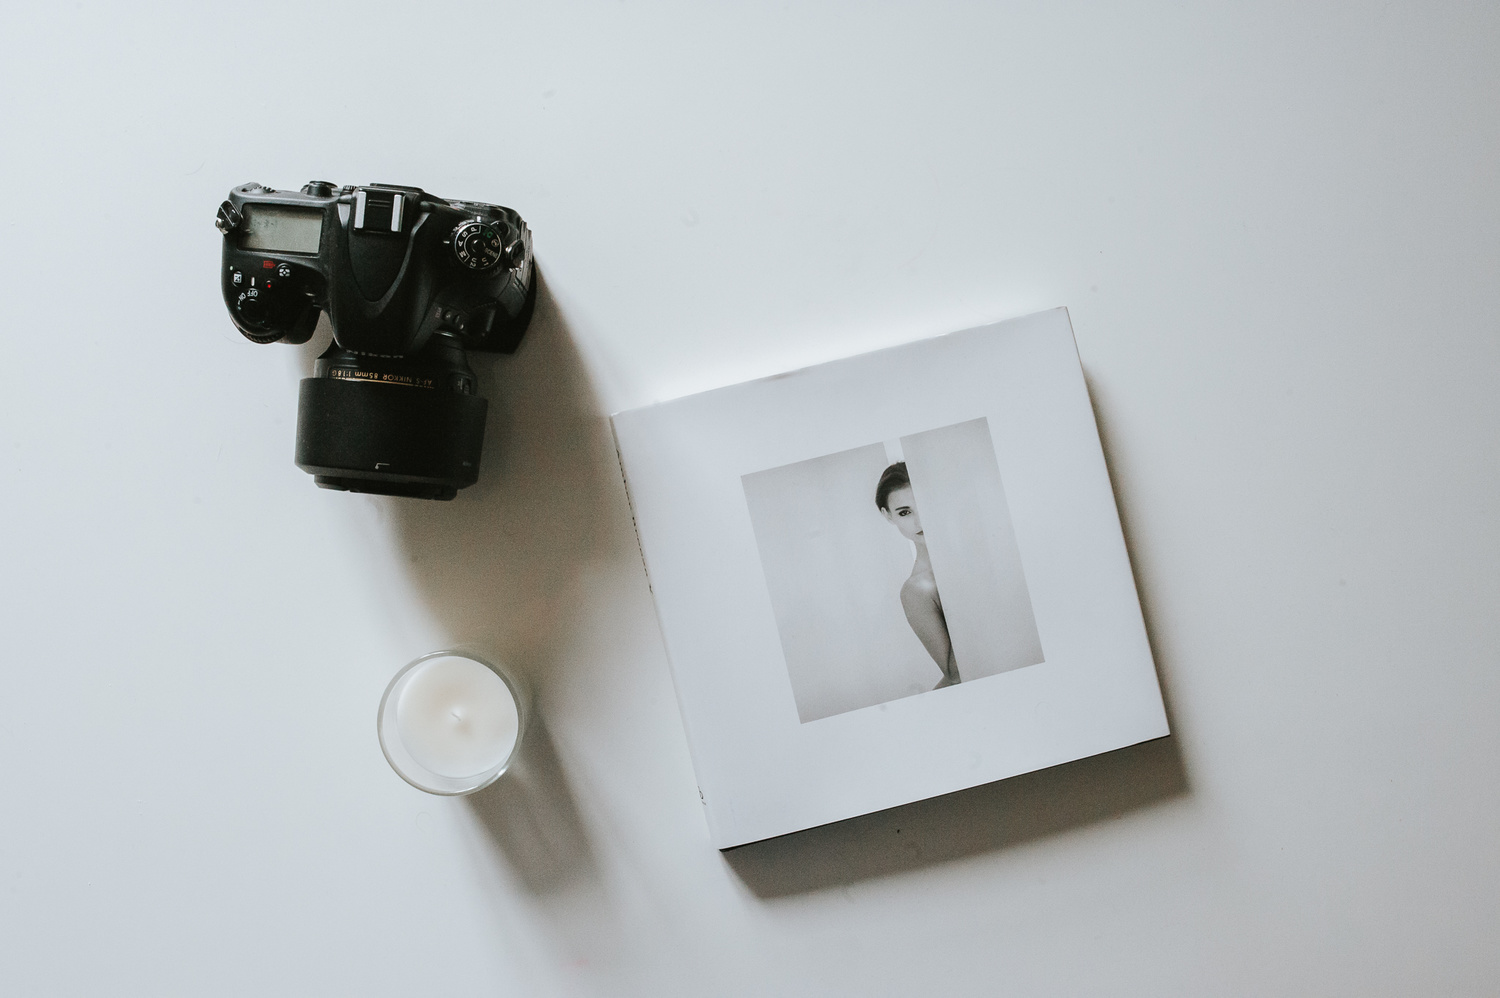 A digital camera, photography book and a candle placed on a white table.